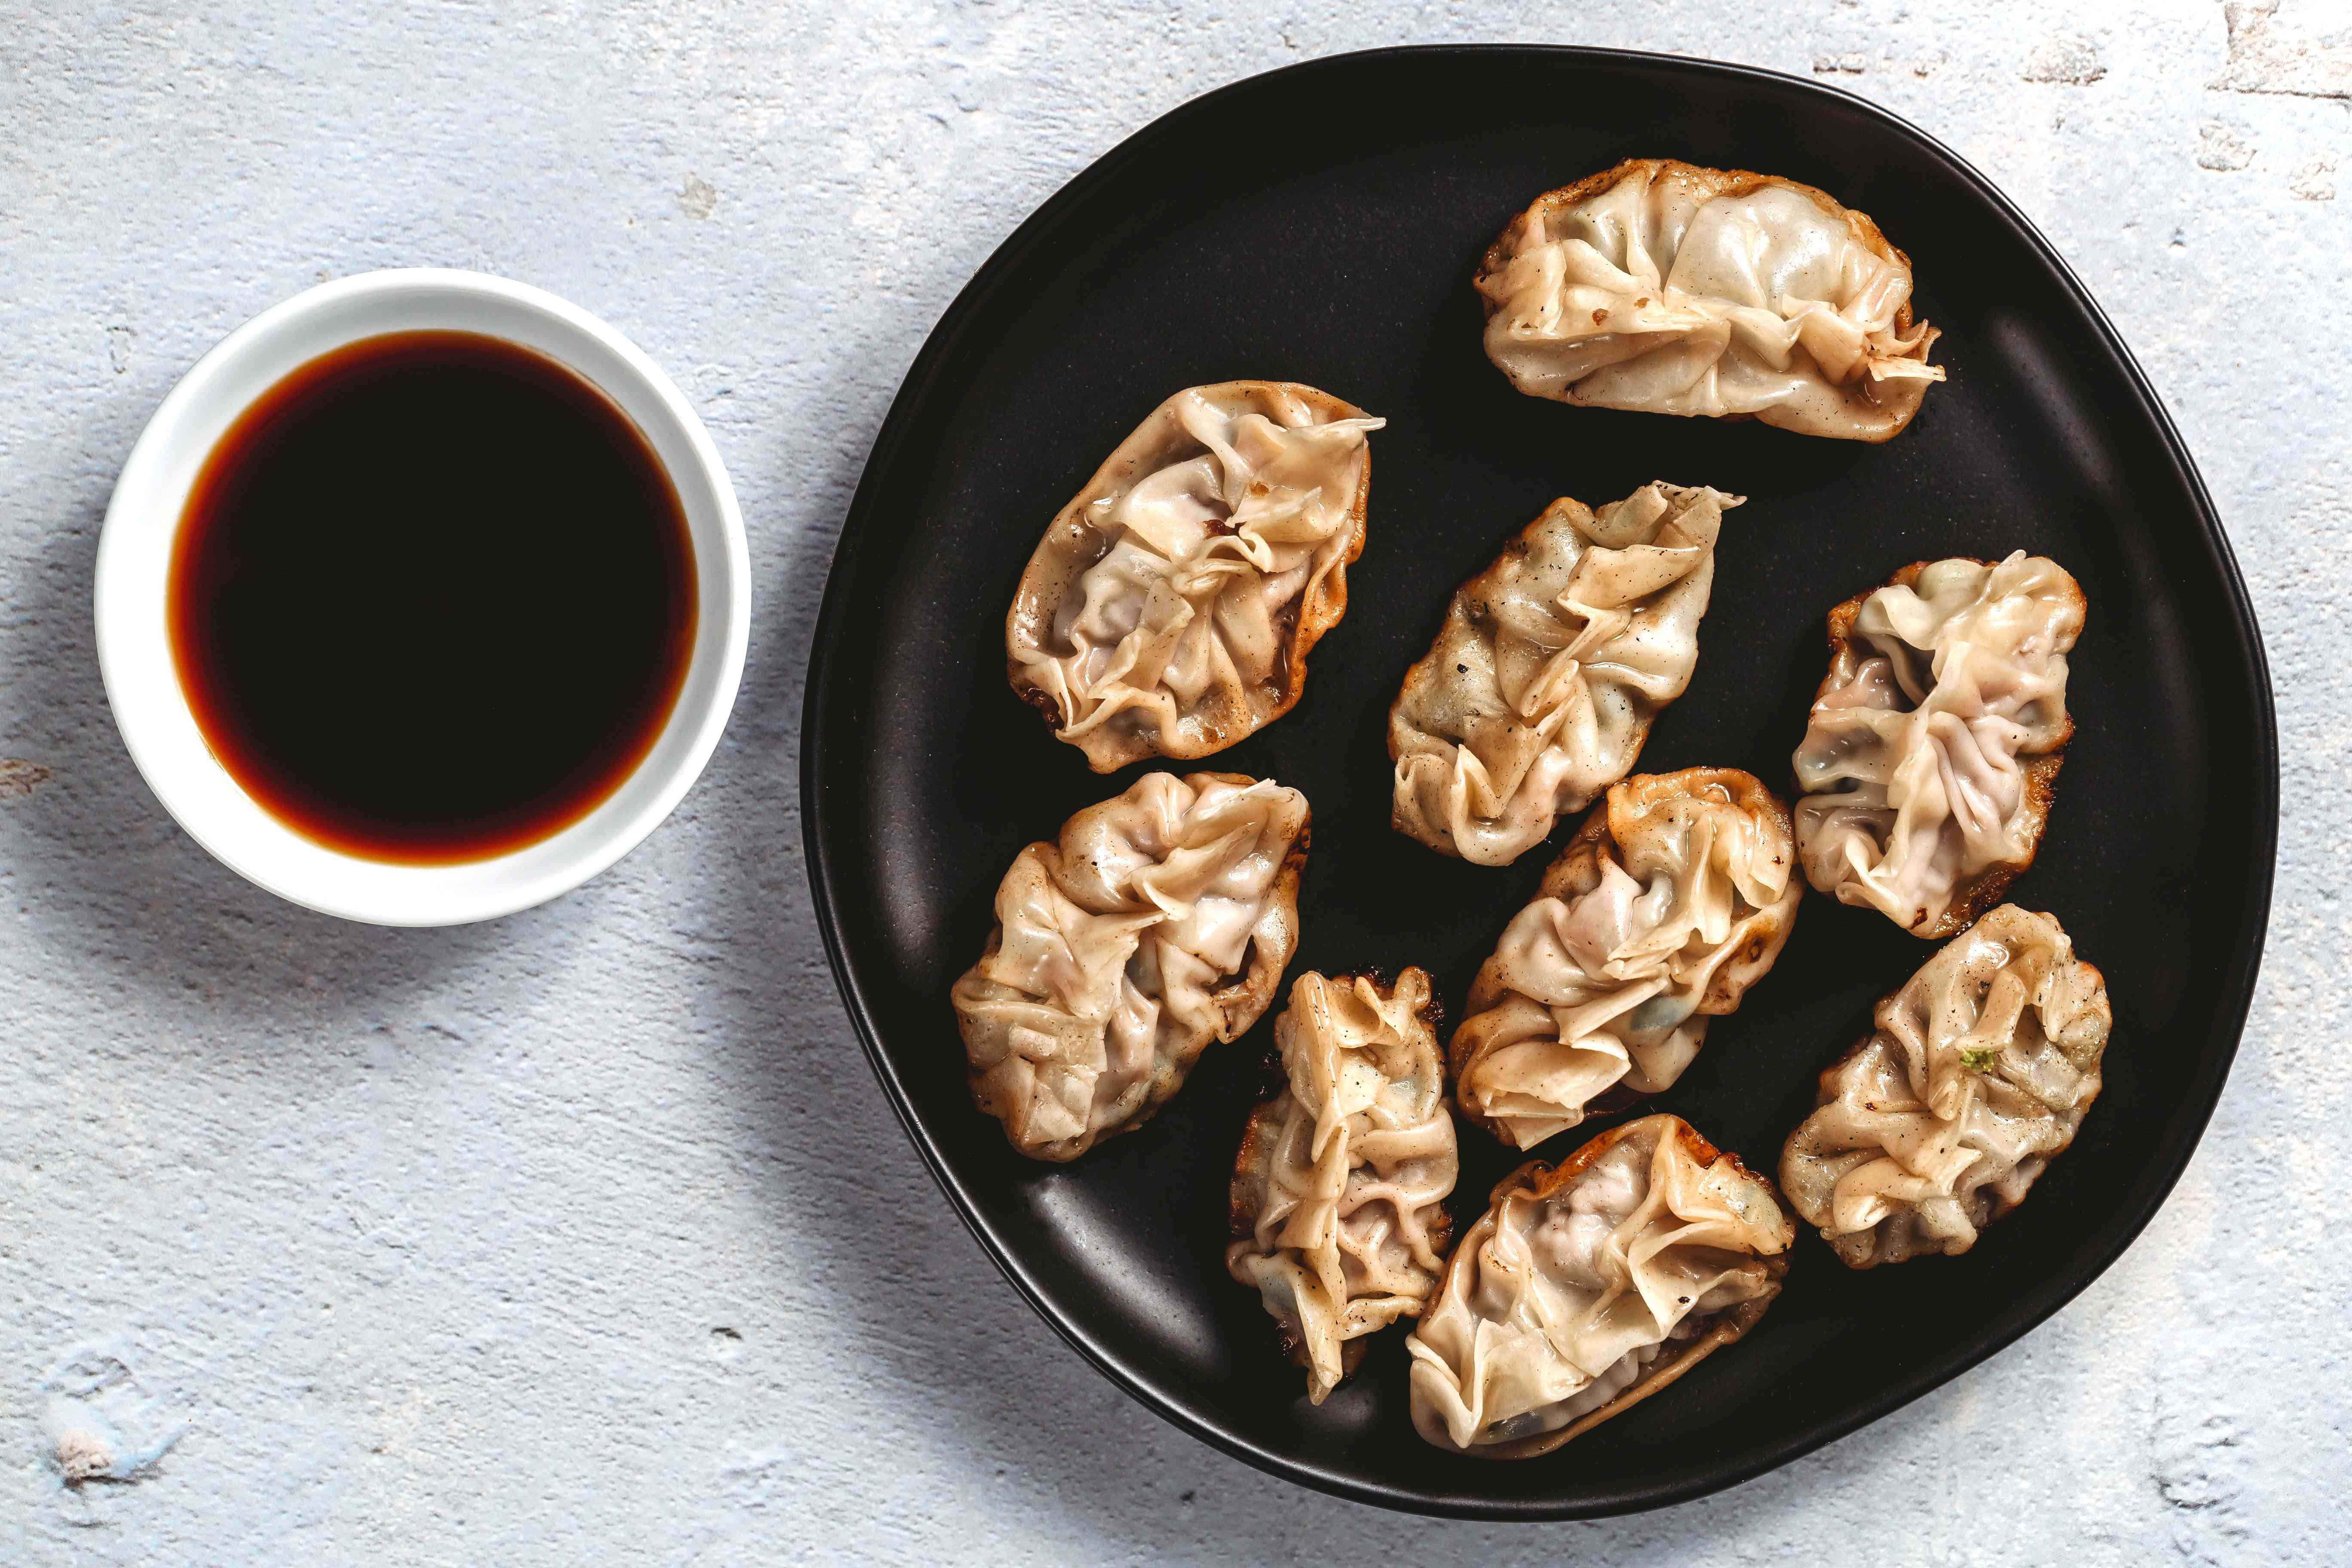 Dumplings served with dipping sauce